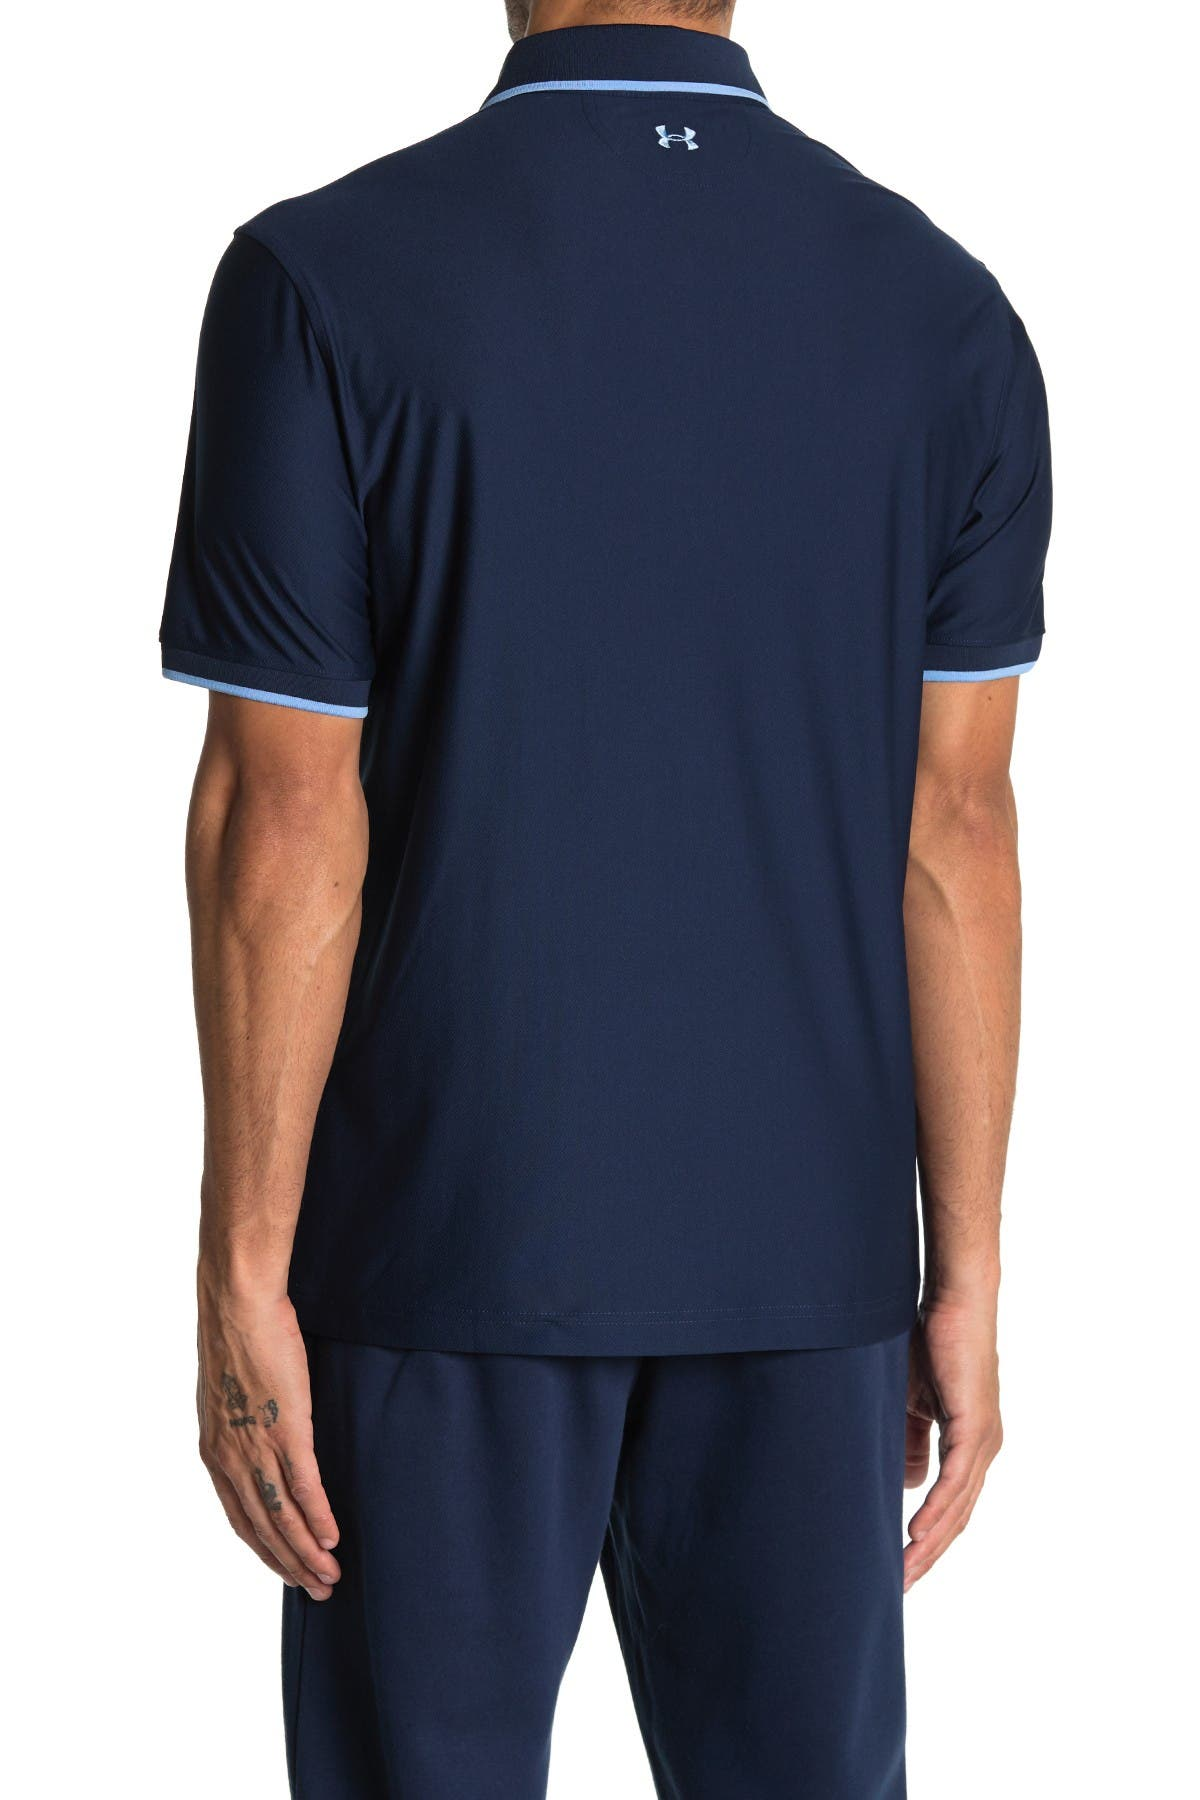 Image of Under Armour Playoff Pique Polo